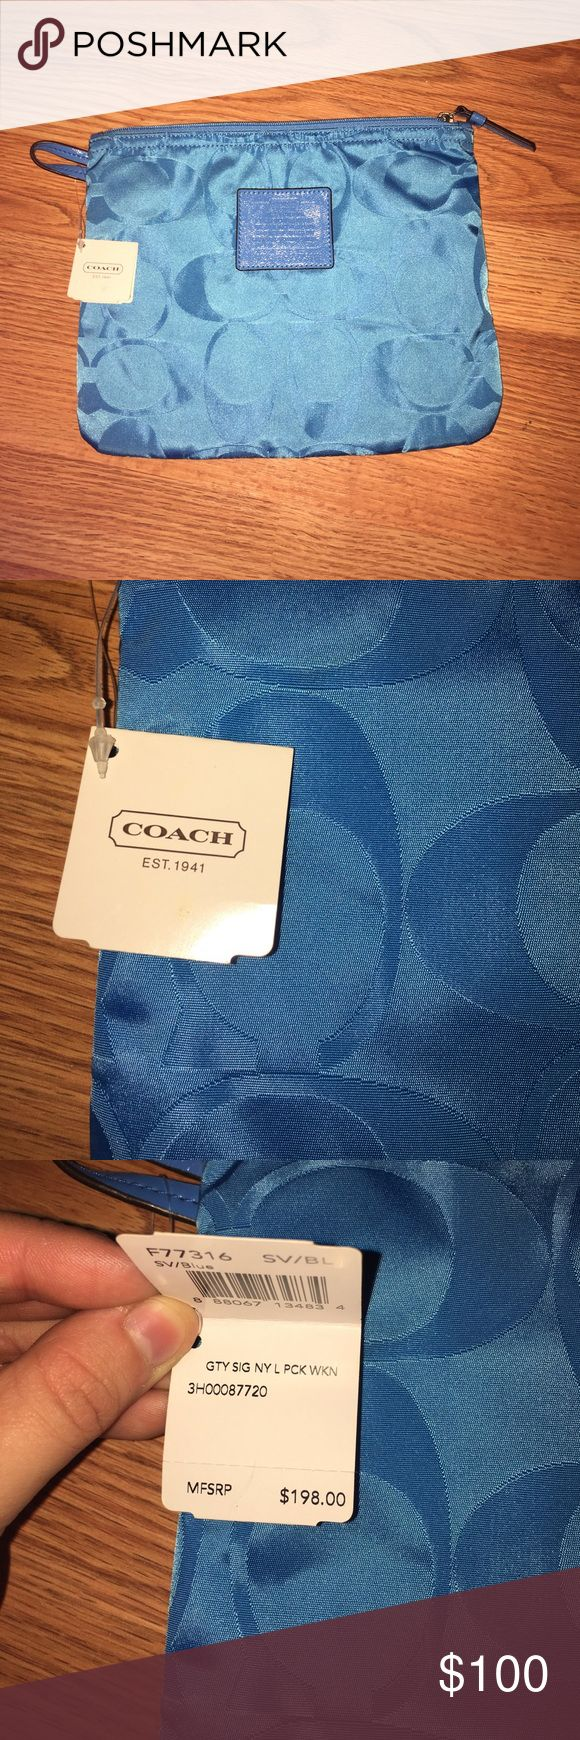 Coach travel bag Blue coach travel bag! Brand new! Never used! Tags still attached! Just cleaning out my closet!  :) Coach Bags Travel Bags